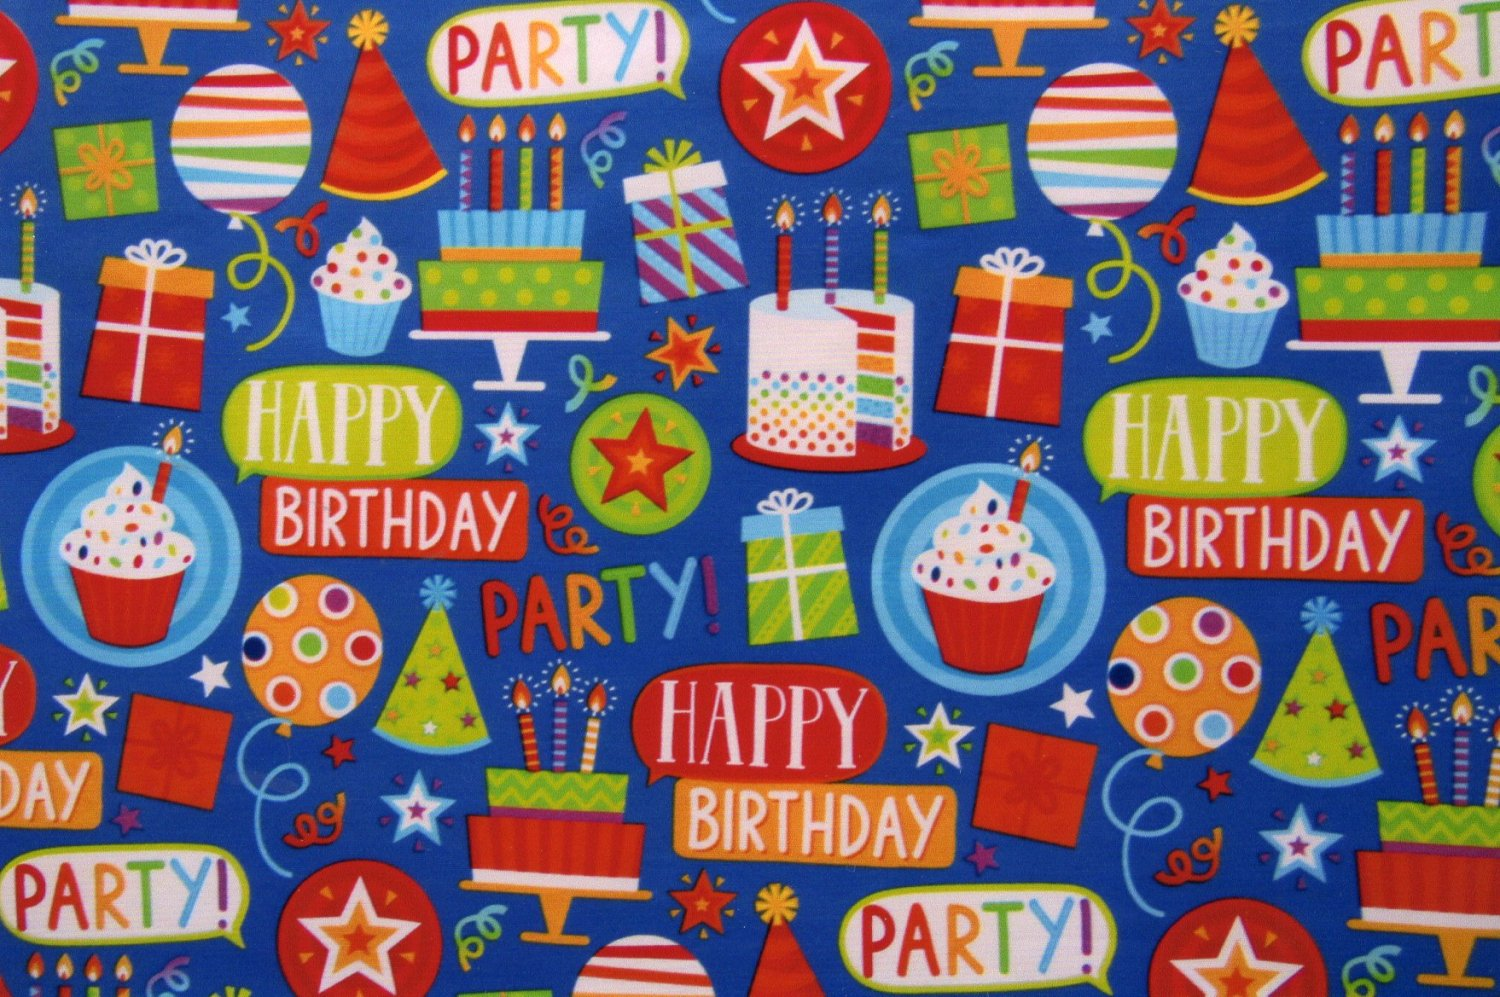 All Occasion / Birthday / Wedding Gift Wrap Sheets, Party Supplies, Wrapping Paper